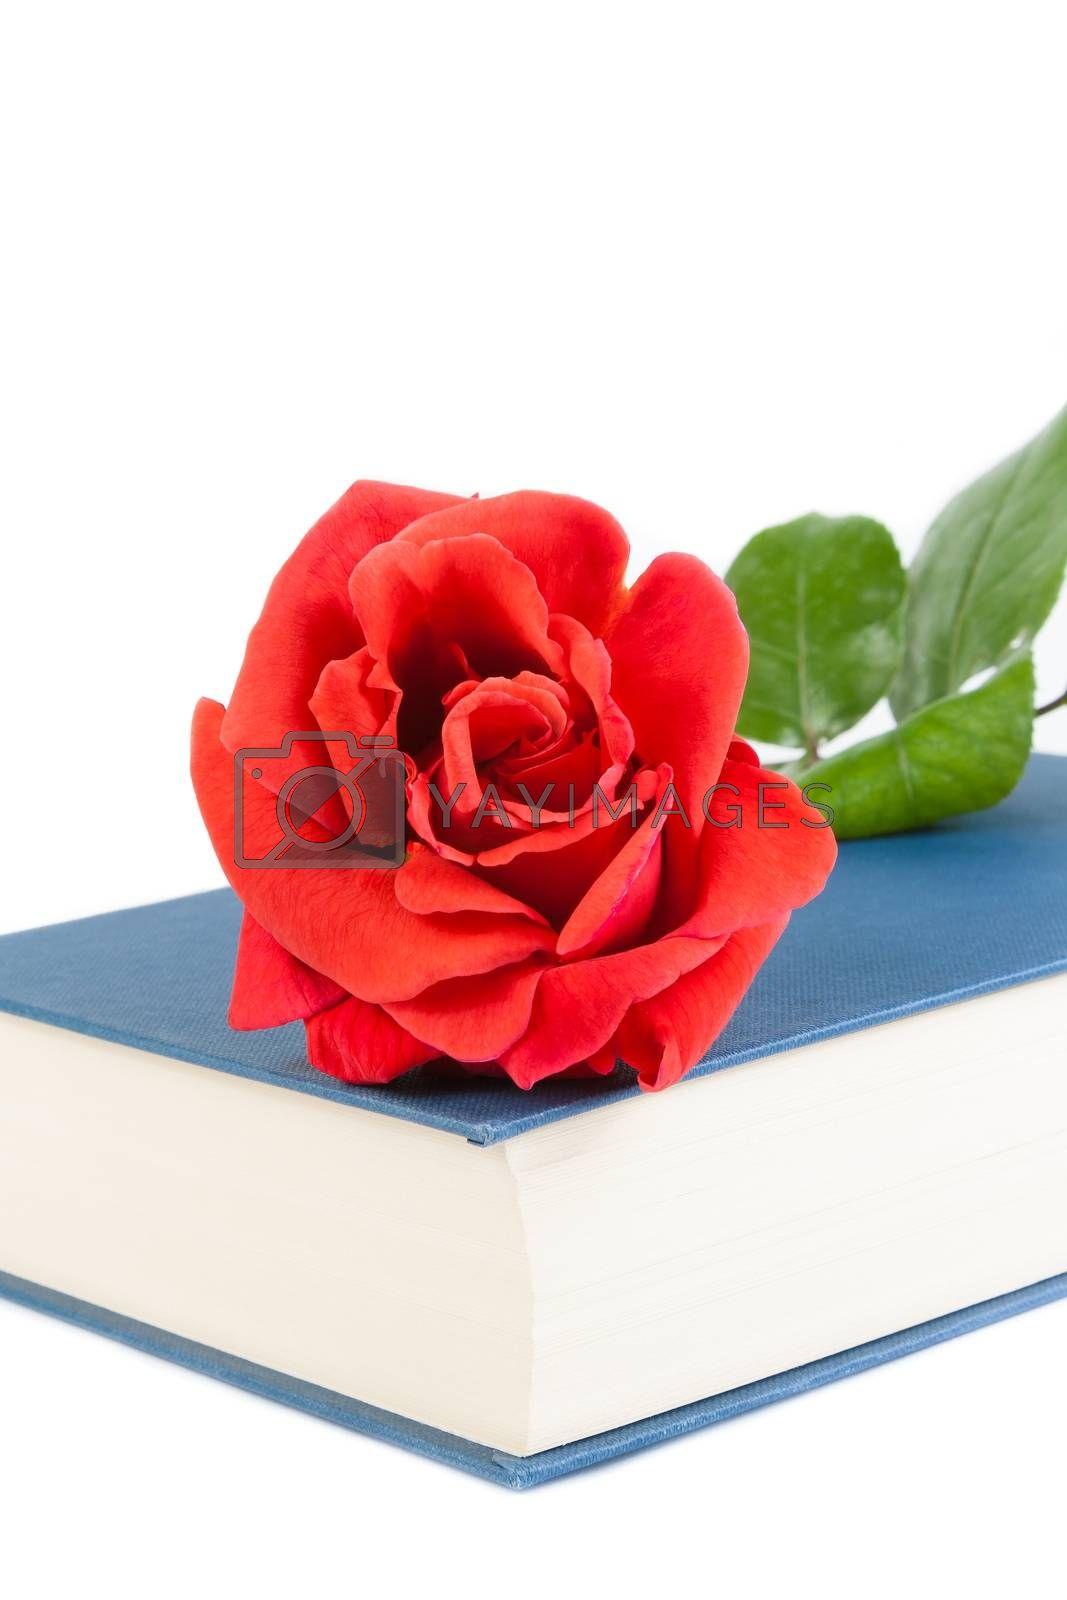 detail of red rose on closed book on white background